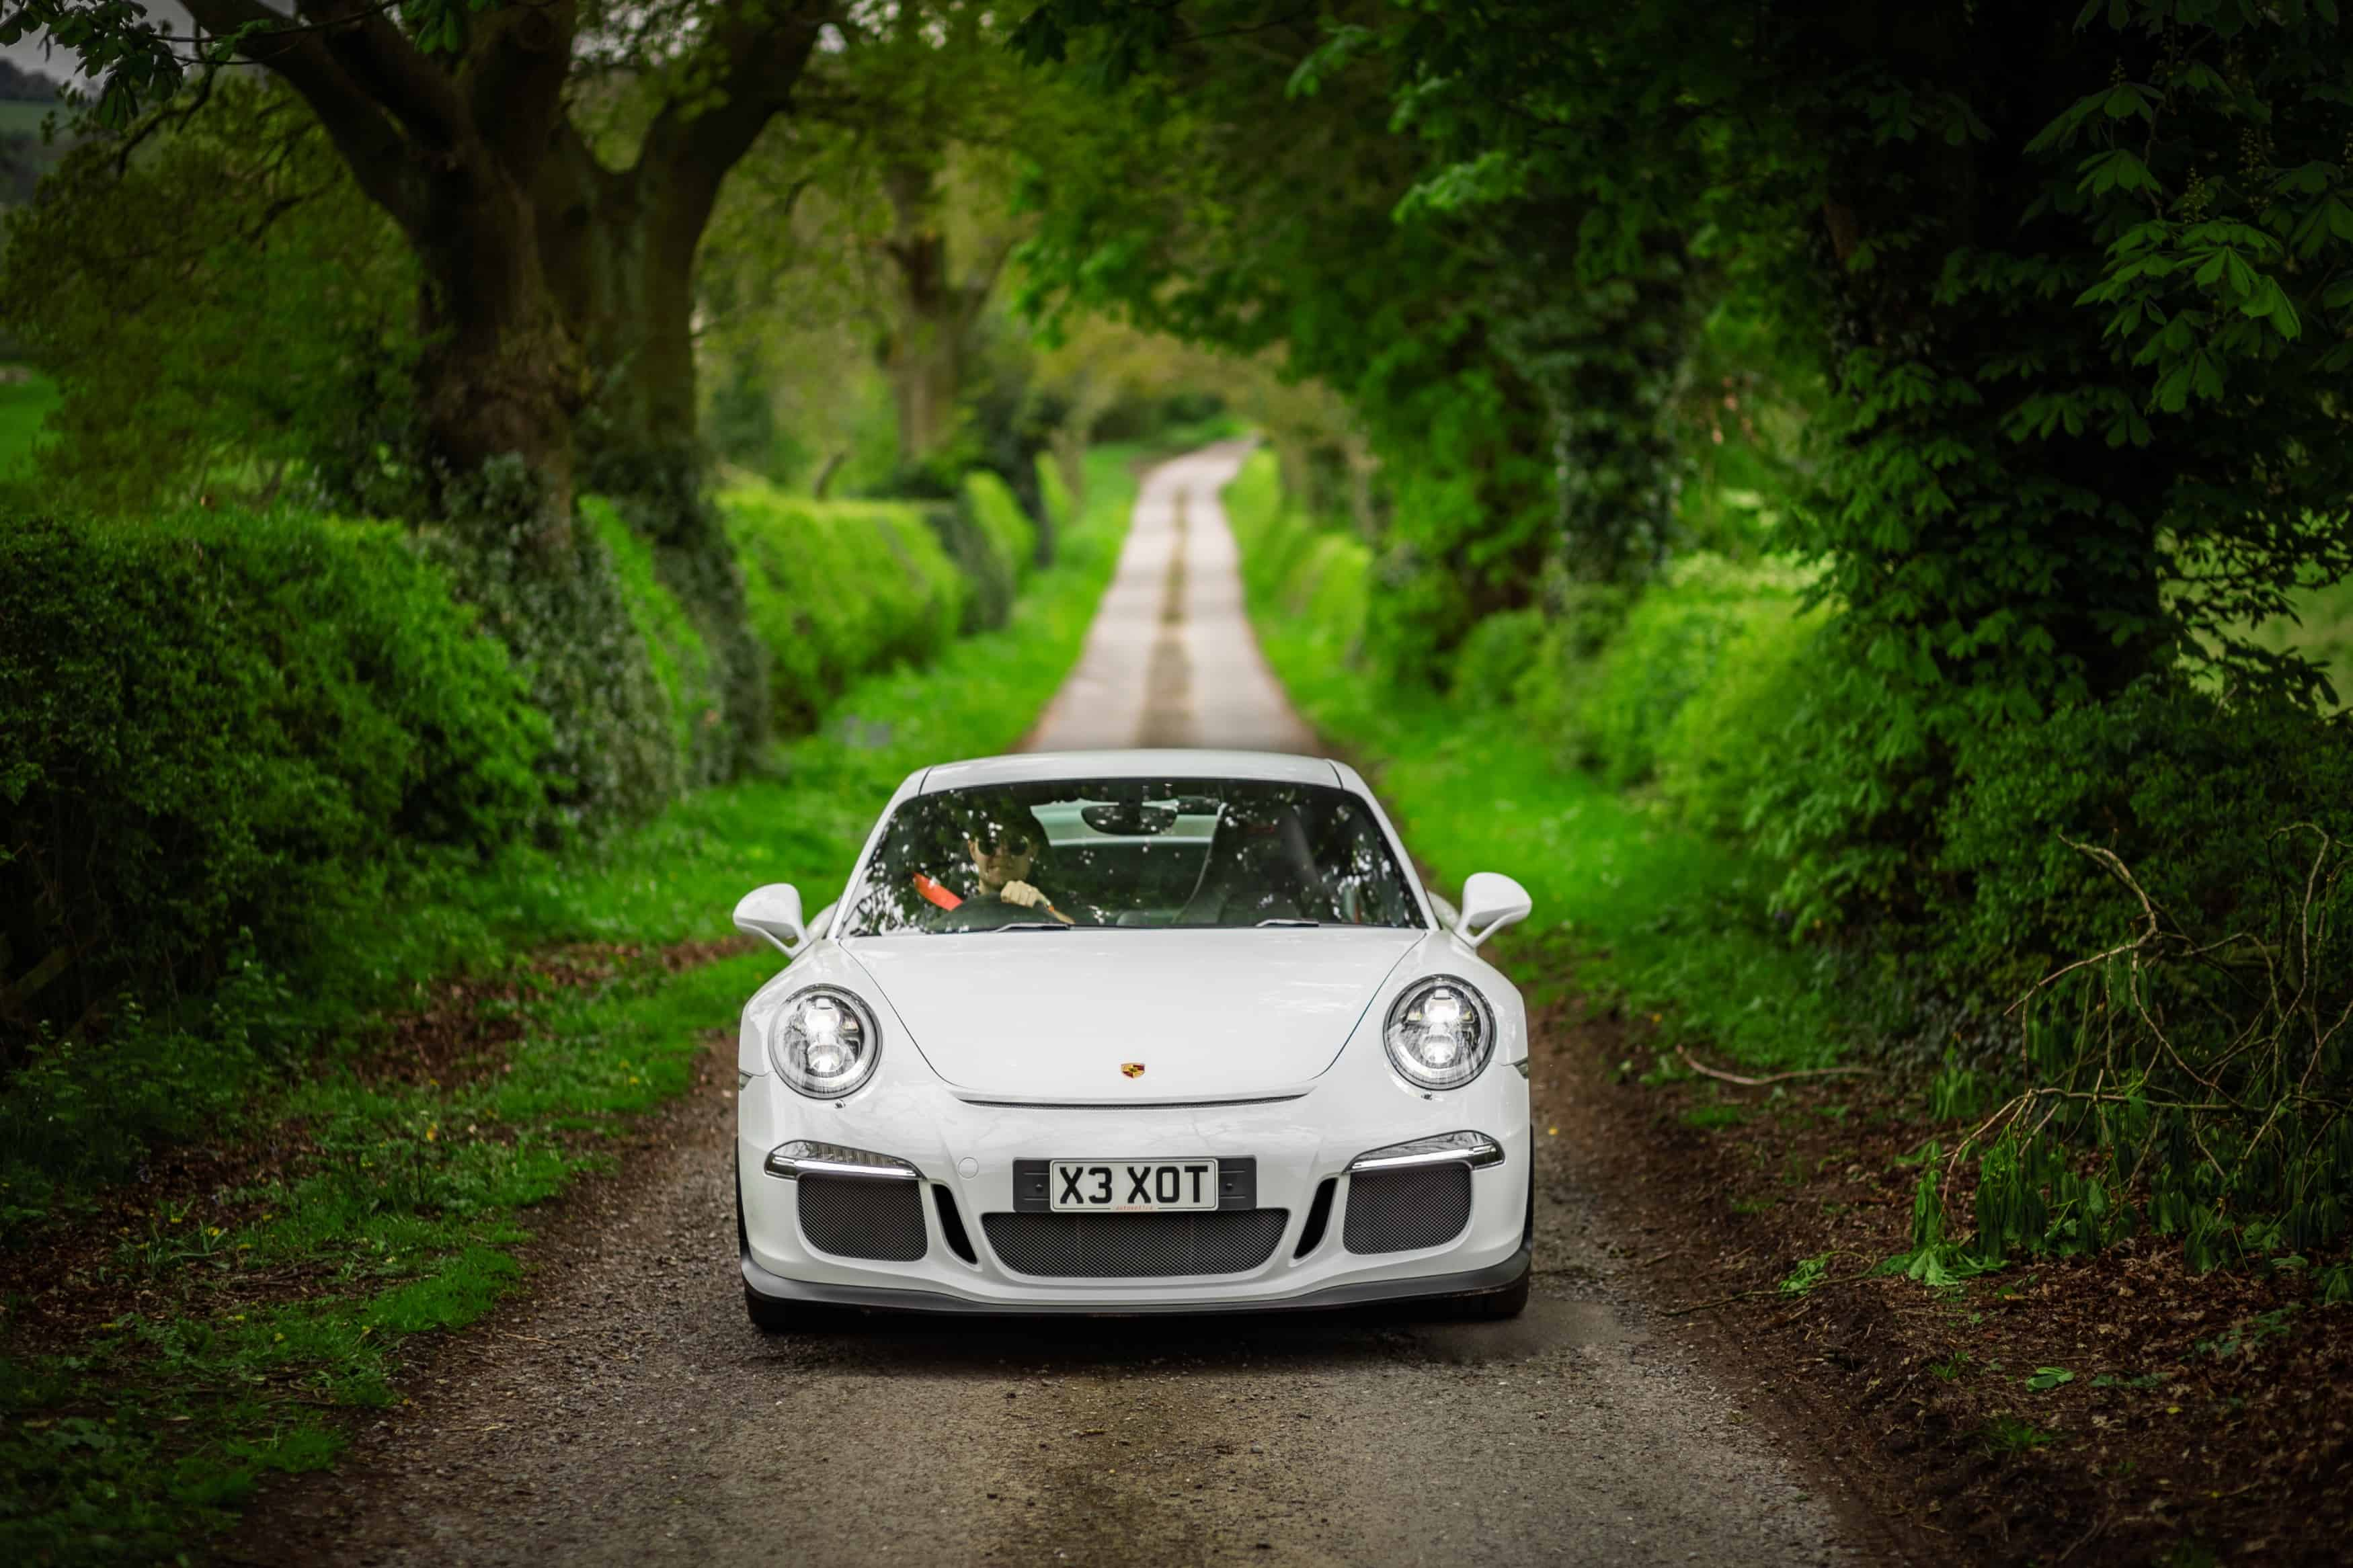 Porsche Driving in Woods